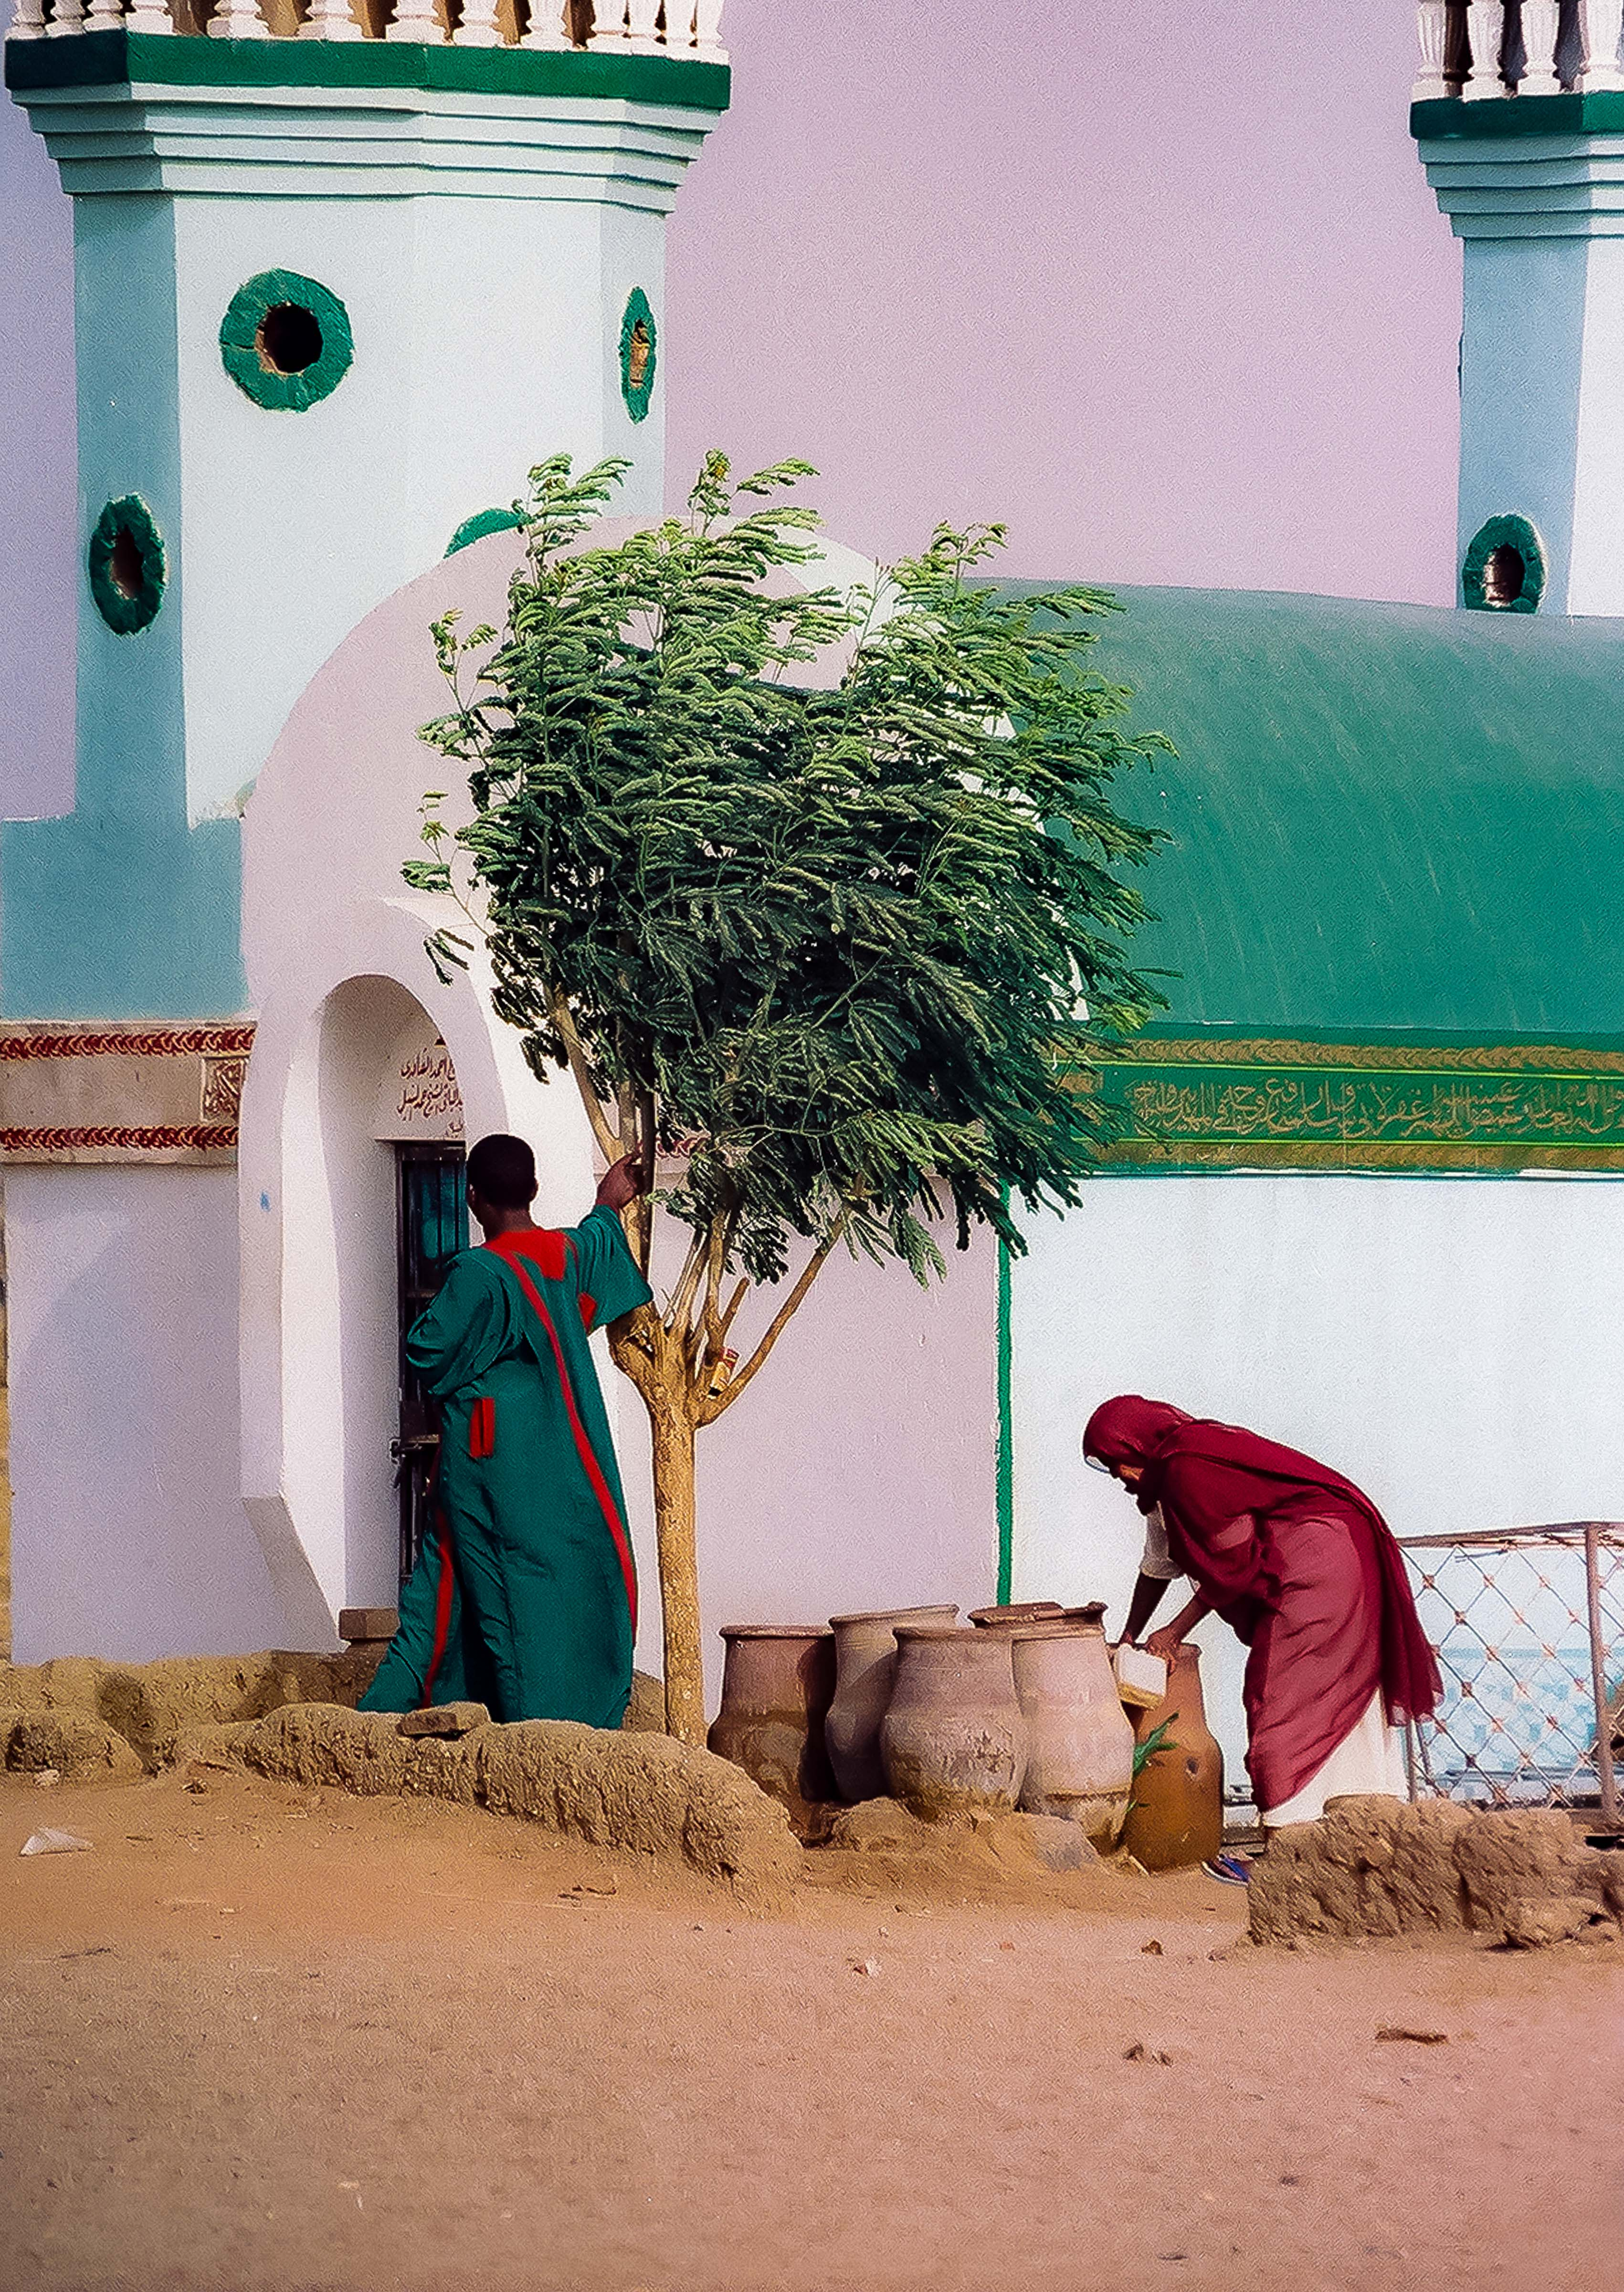 Sudan, Obdurman Mosque, 2002